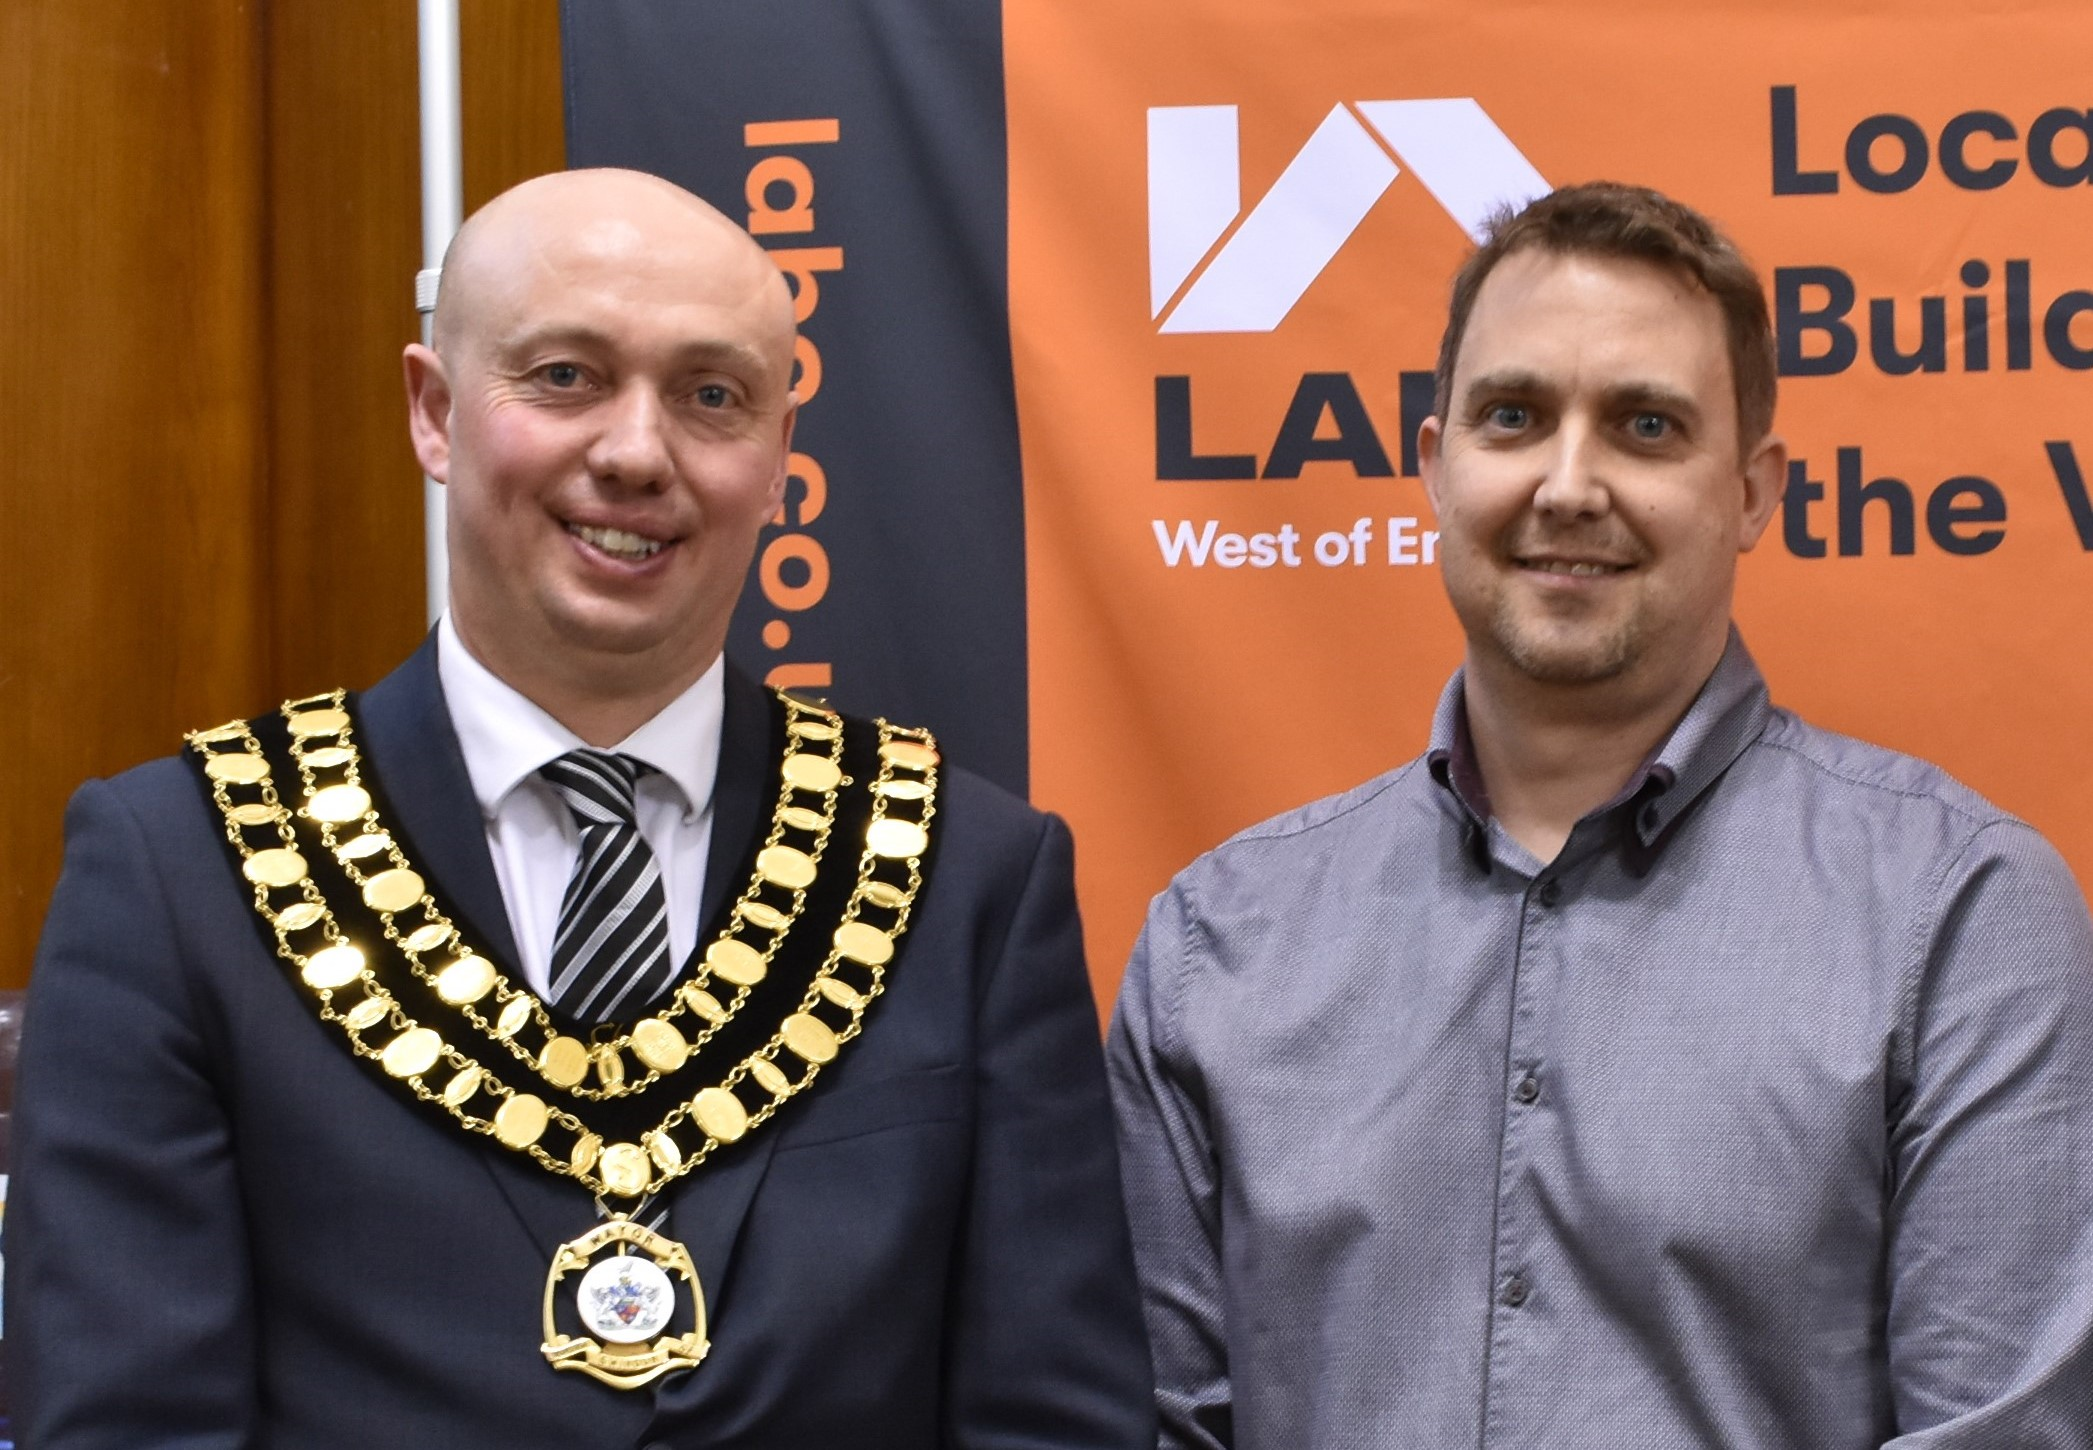 Mike with Mayor of Swindon